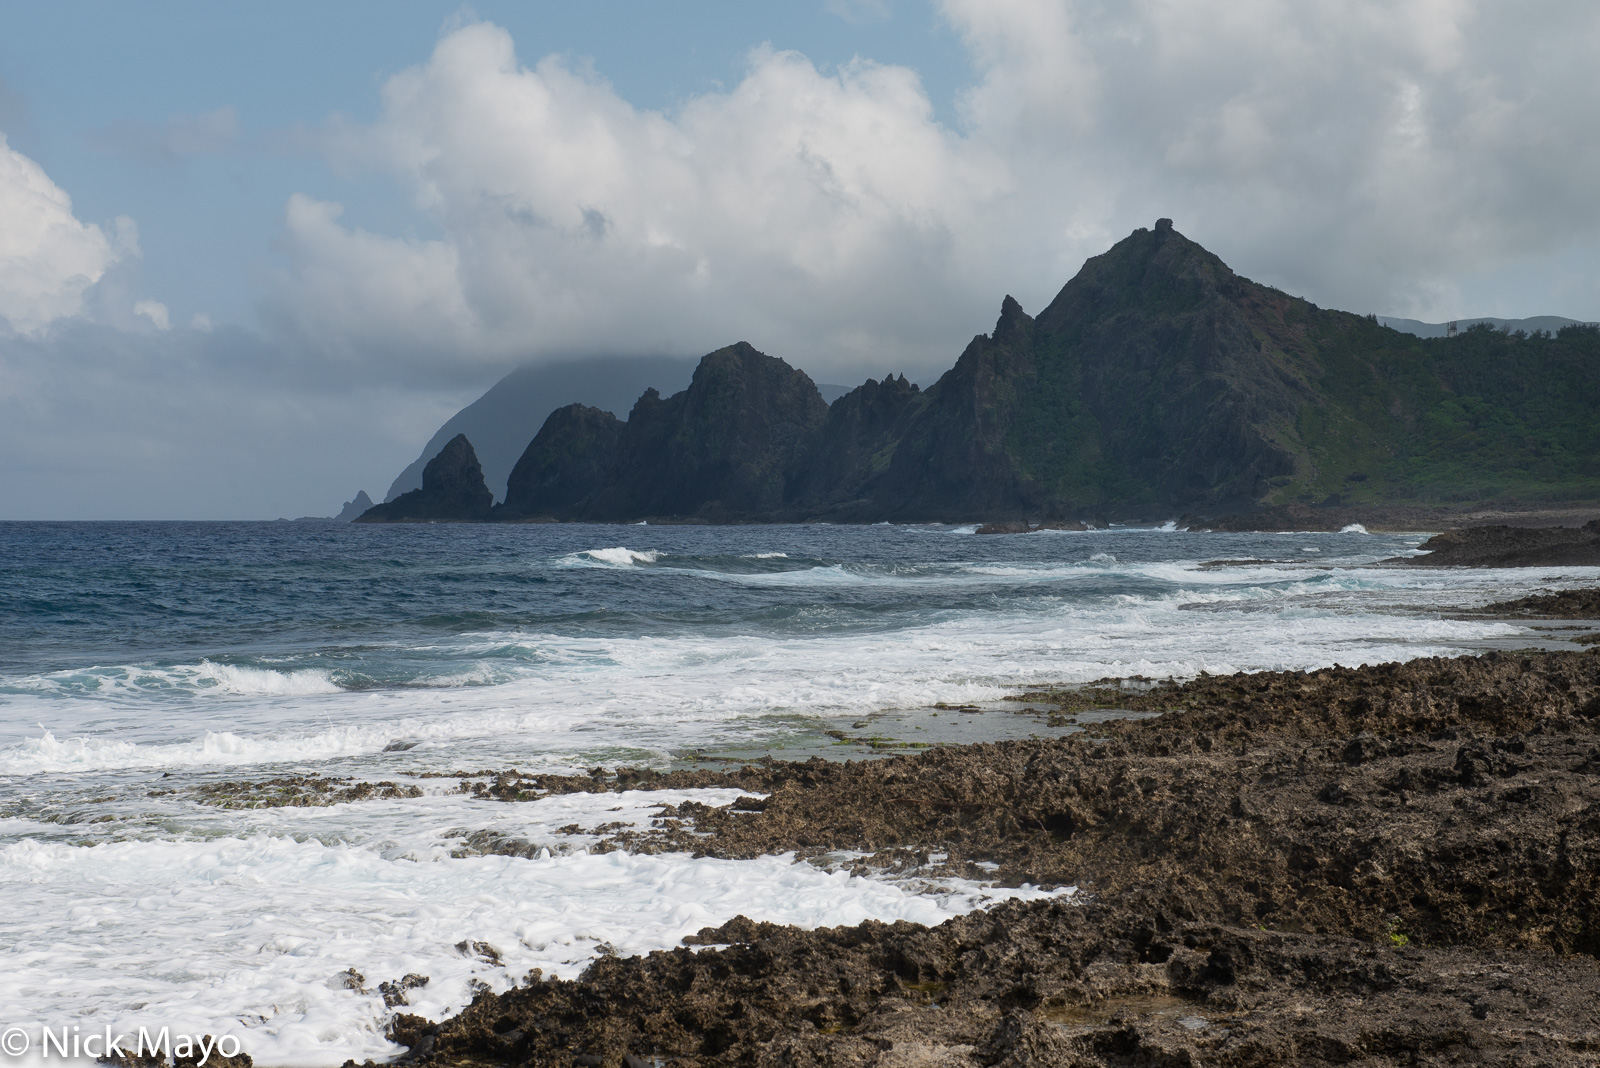 The south east coastline of Lanyu.